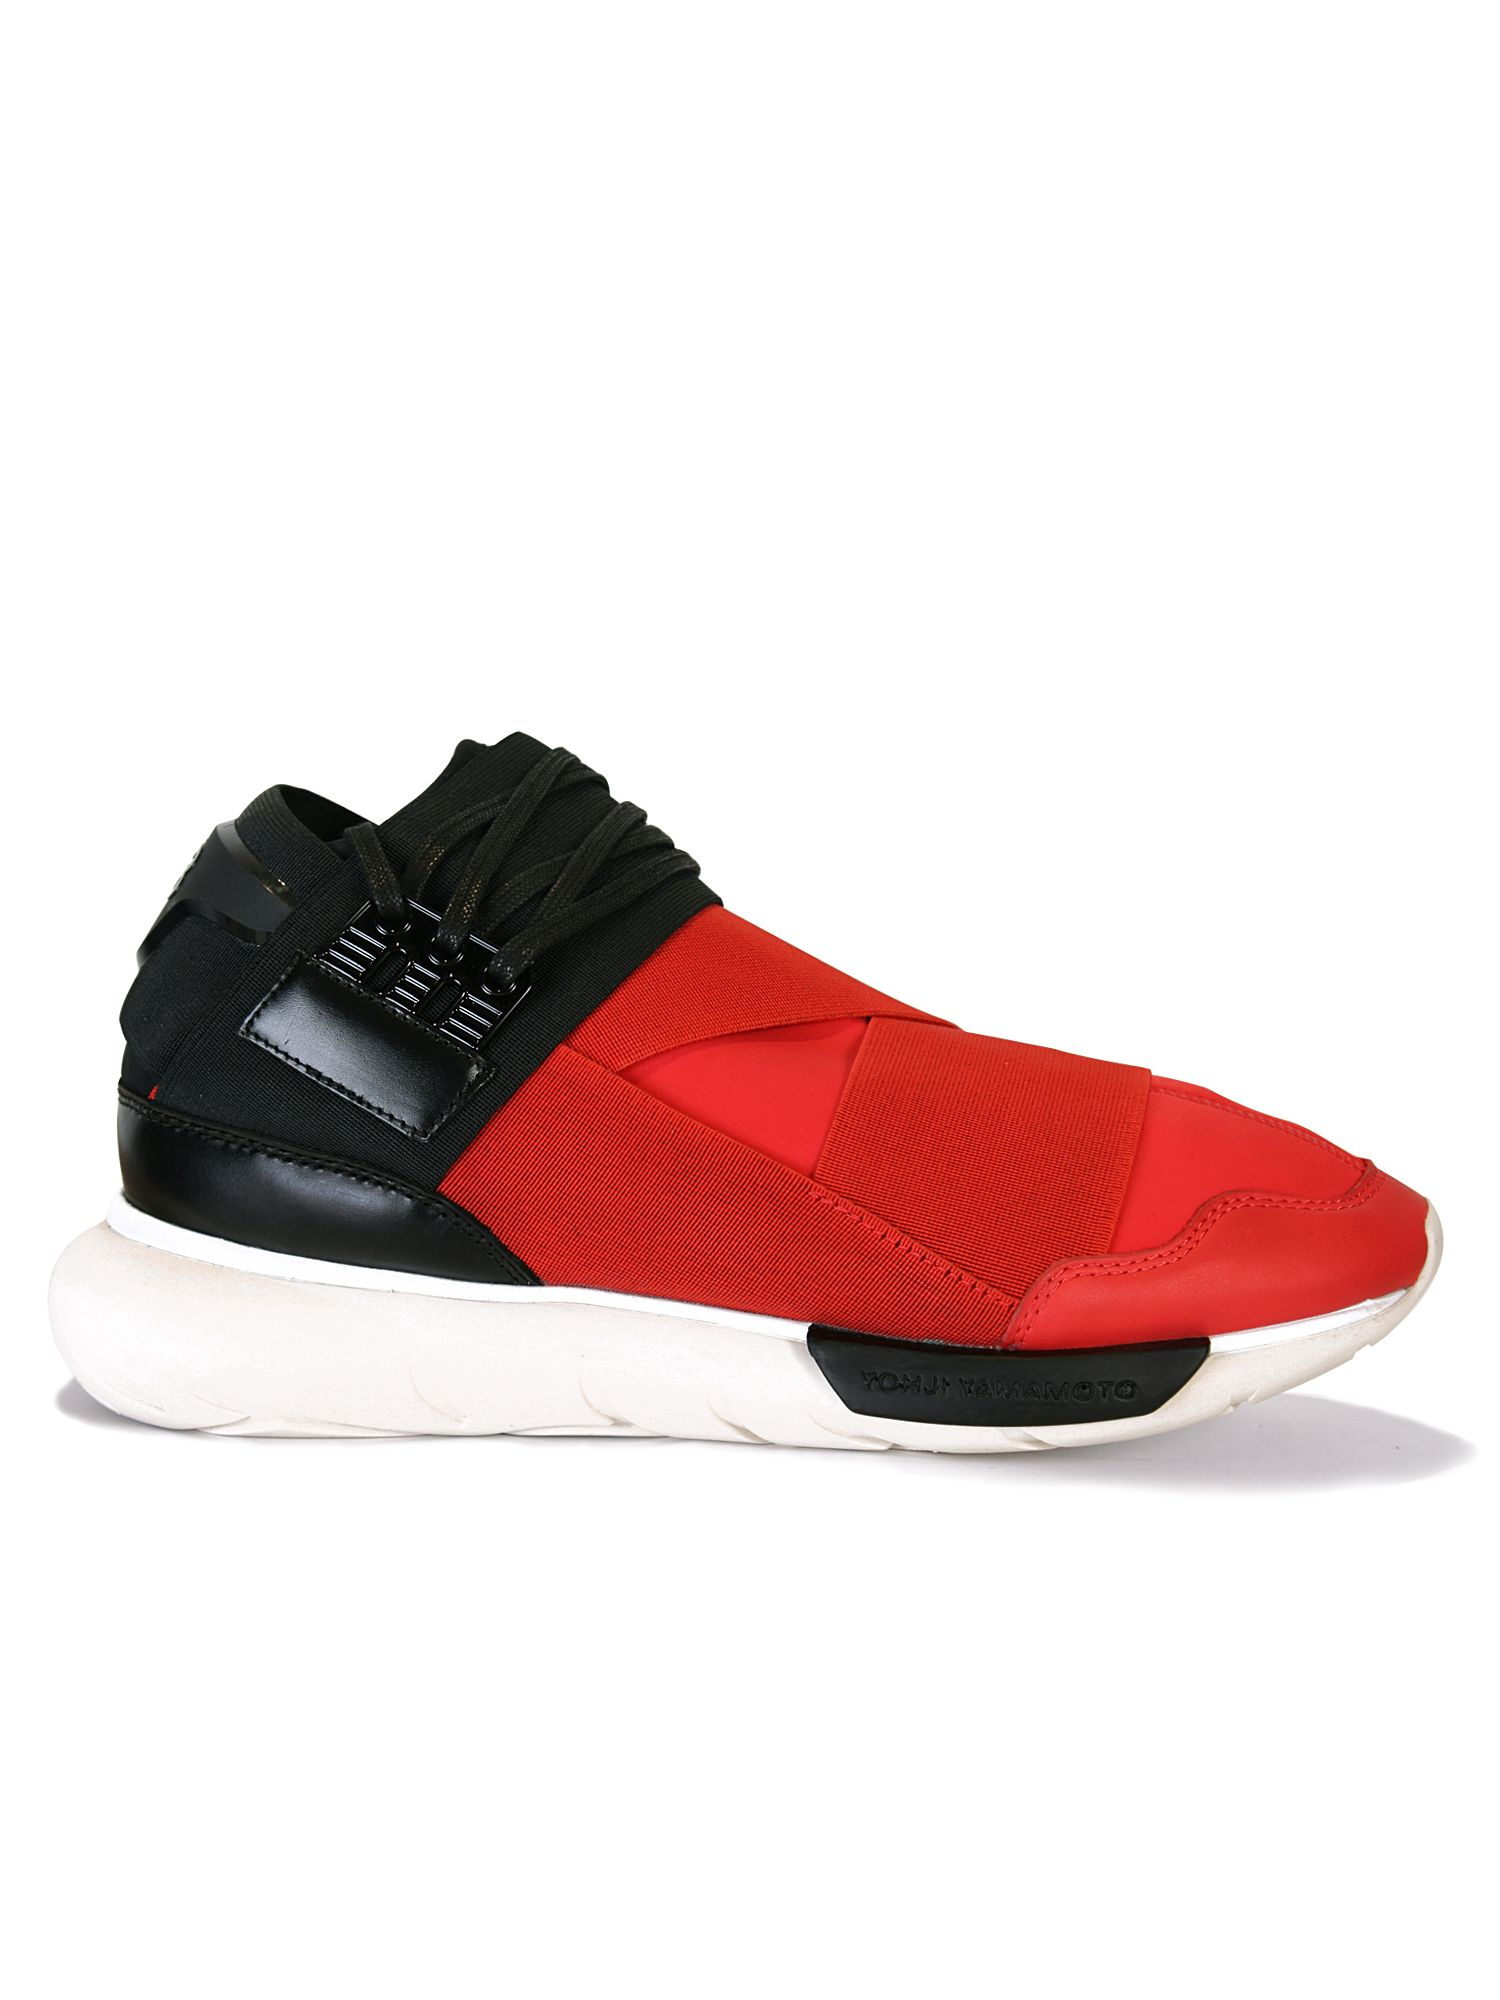 cfc978eb8c382 Y3 Red Black Qasa High Top Sneakers - Red black qasa high top sneakers